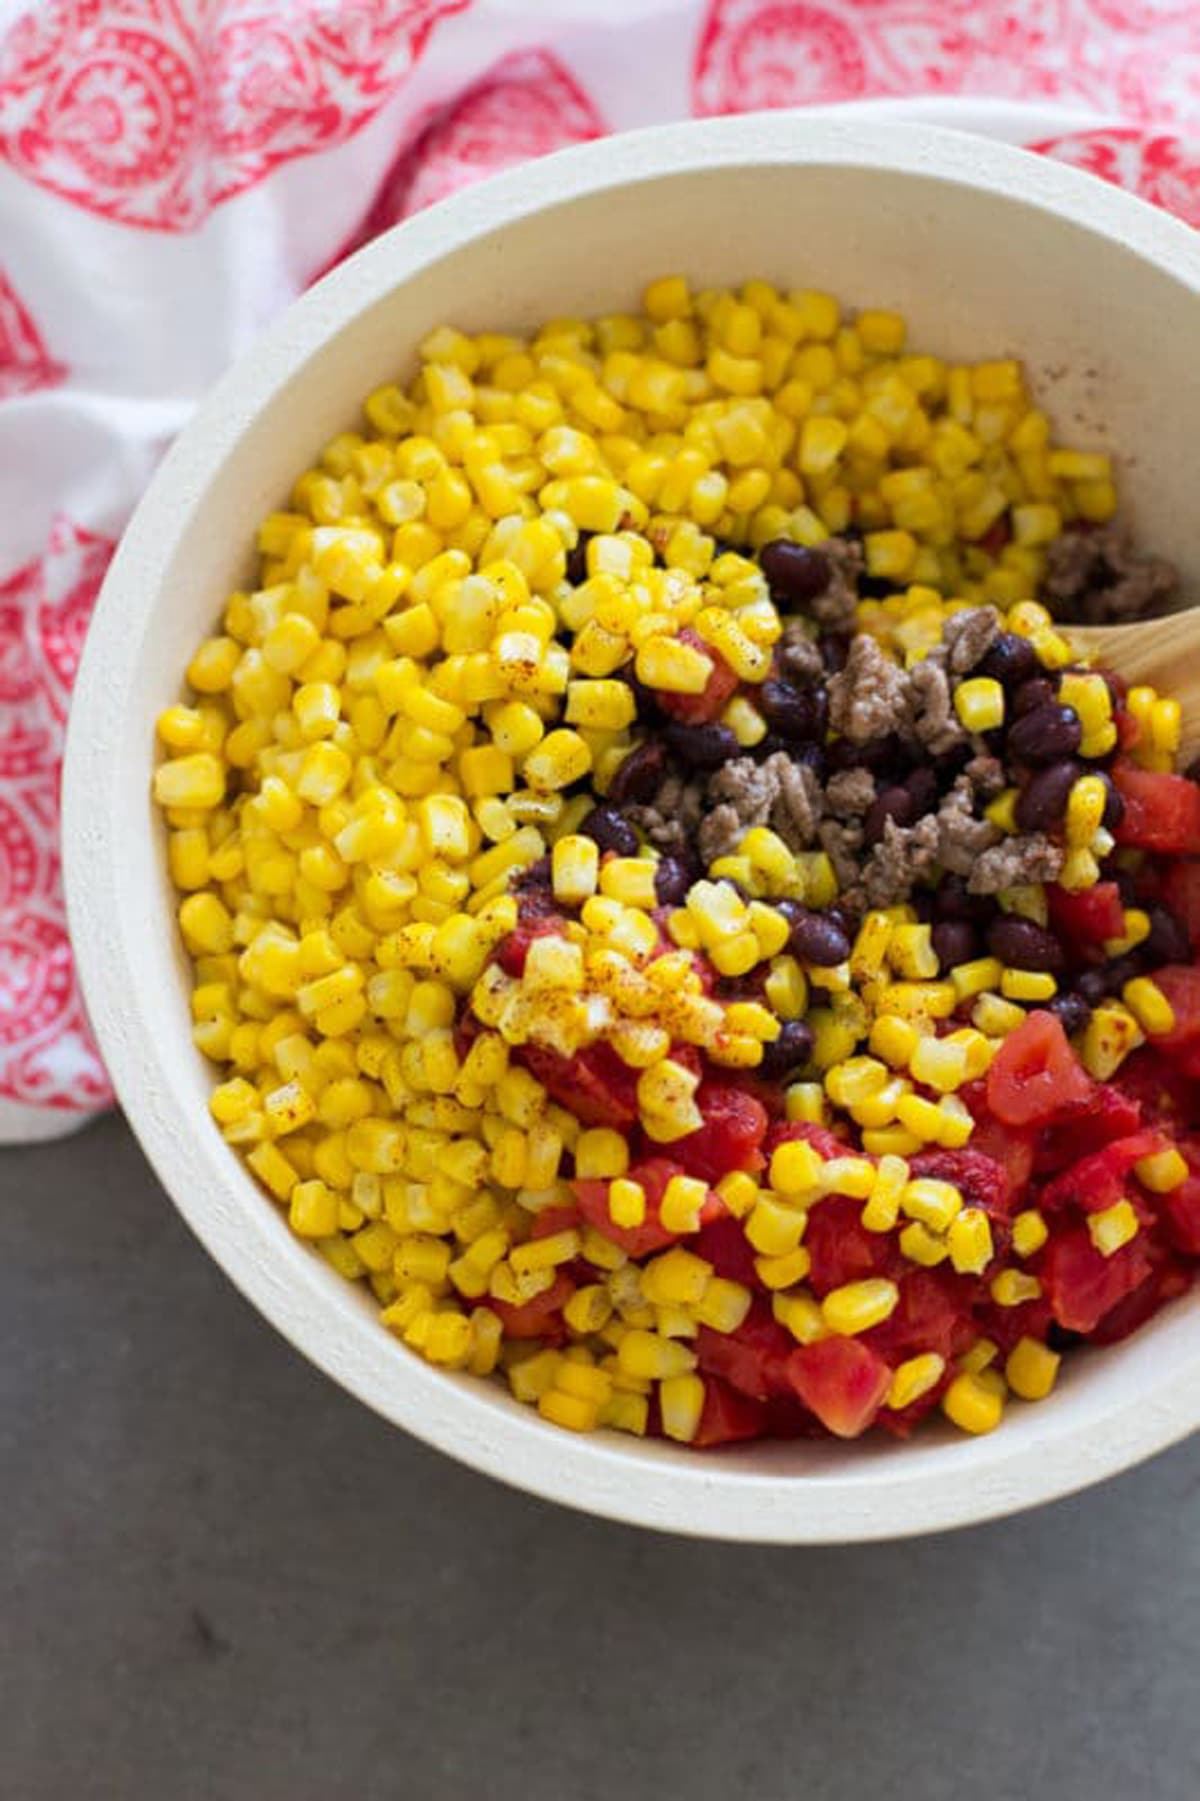 Mixing bowl containing corn, beans,tomatoes, ground beef, and seasoning.